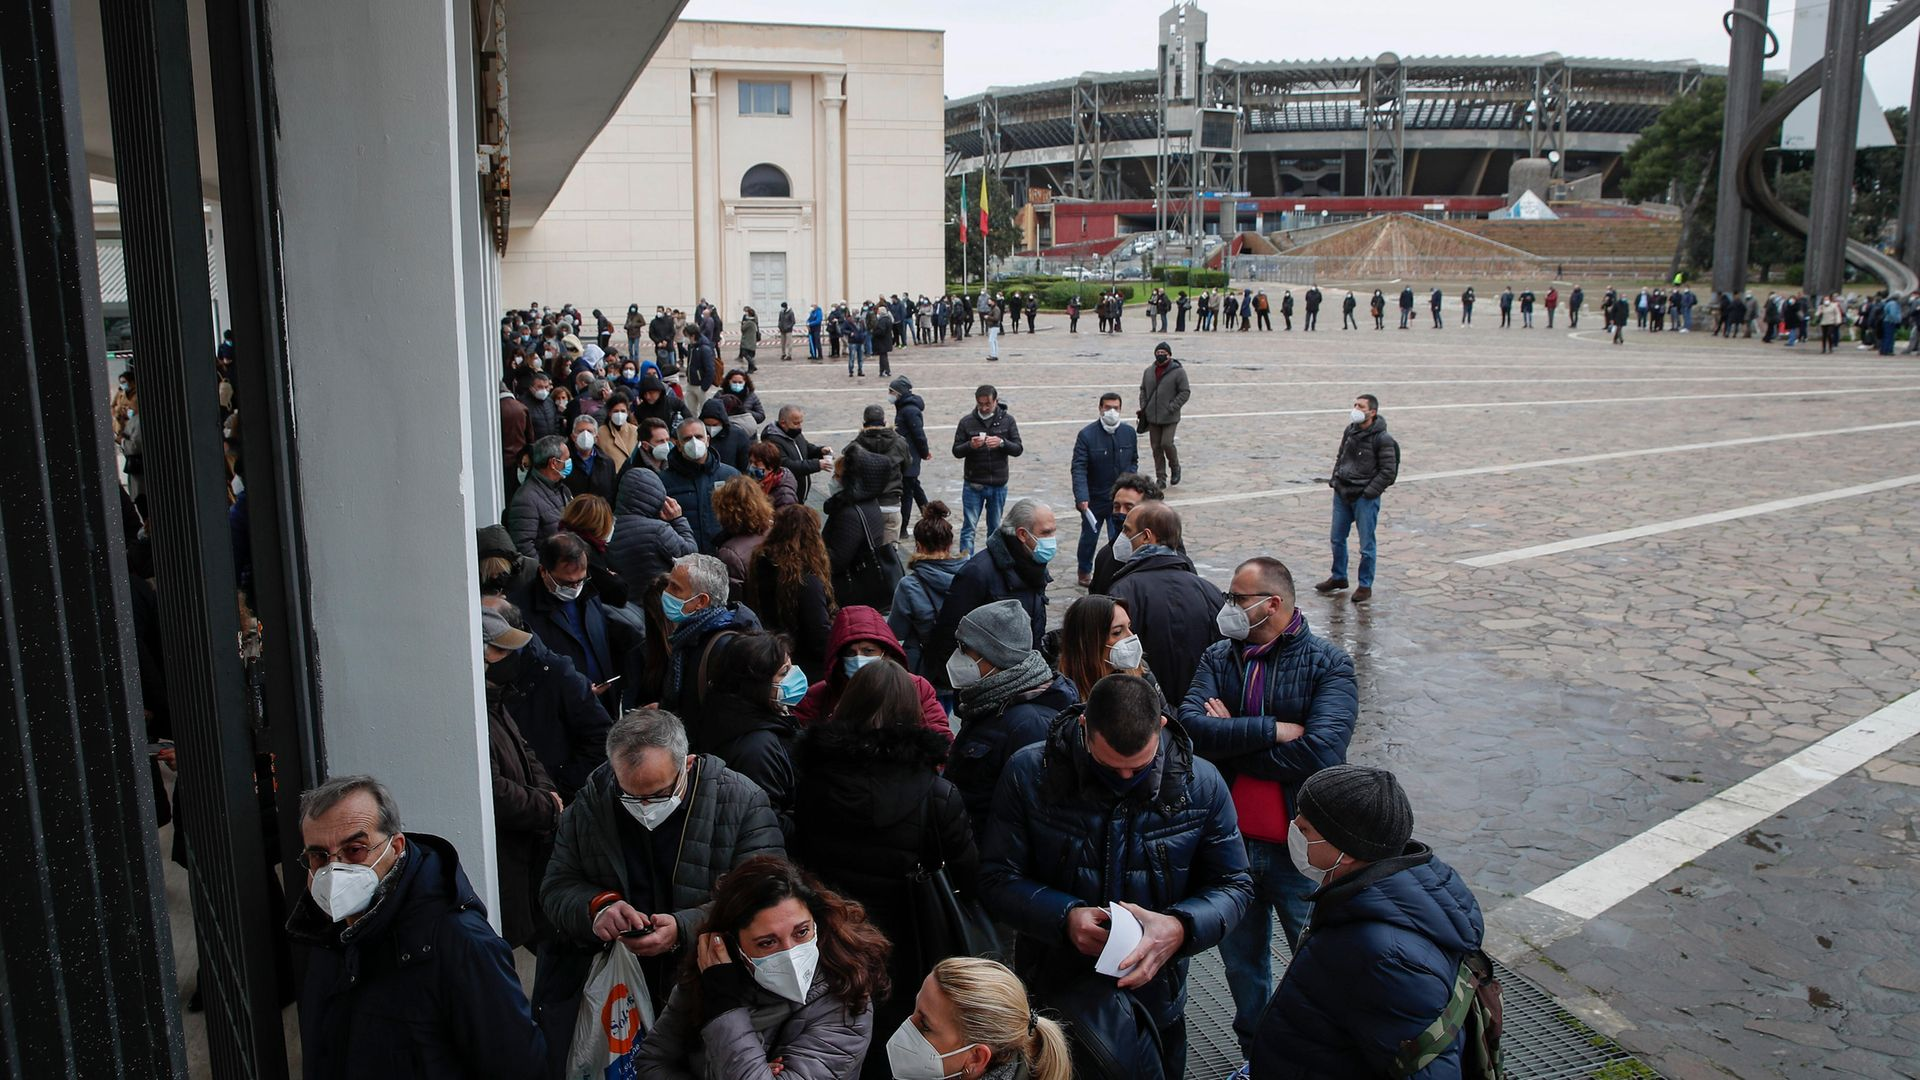 Hundreds of health workers line up to be vaccinated at a facility set up in an exhibition centre in Naples near the city's football stadium - Credit: KONTROLAB/LightRocket via Getty